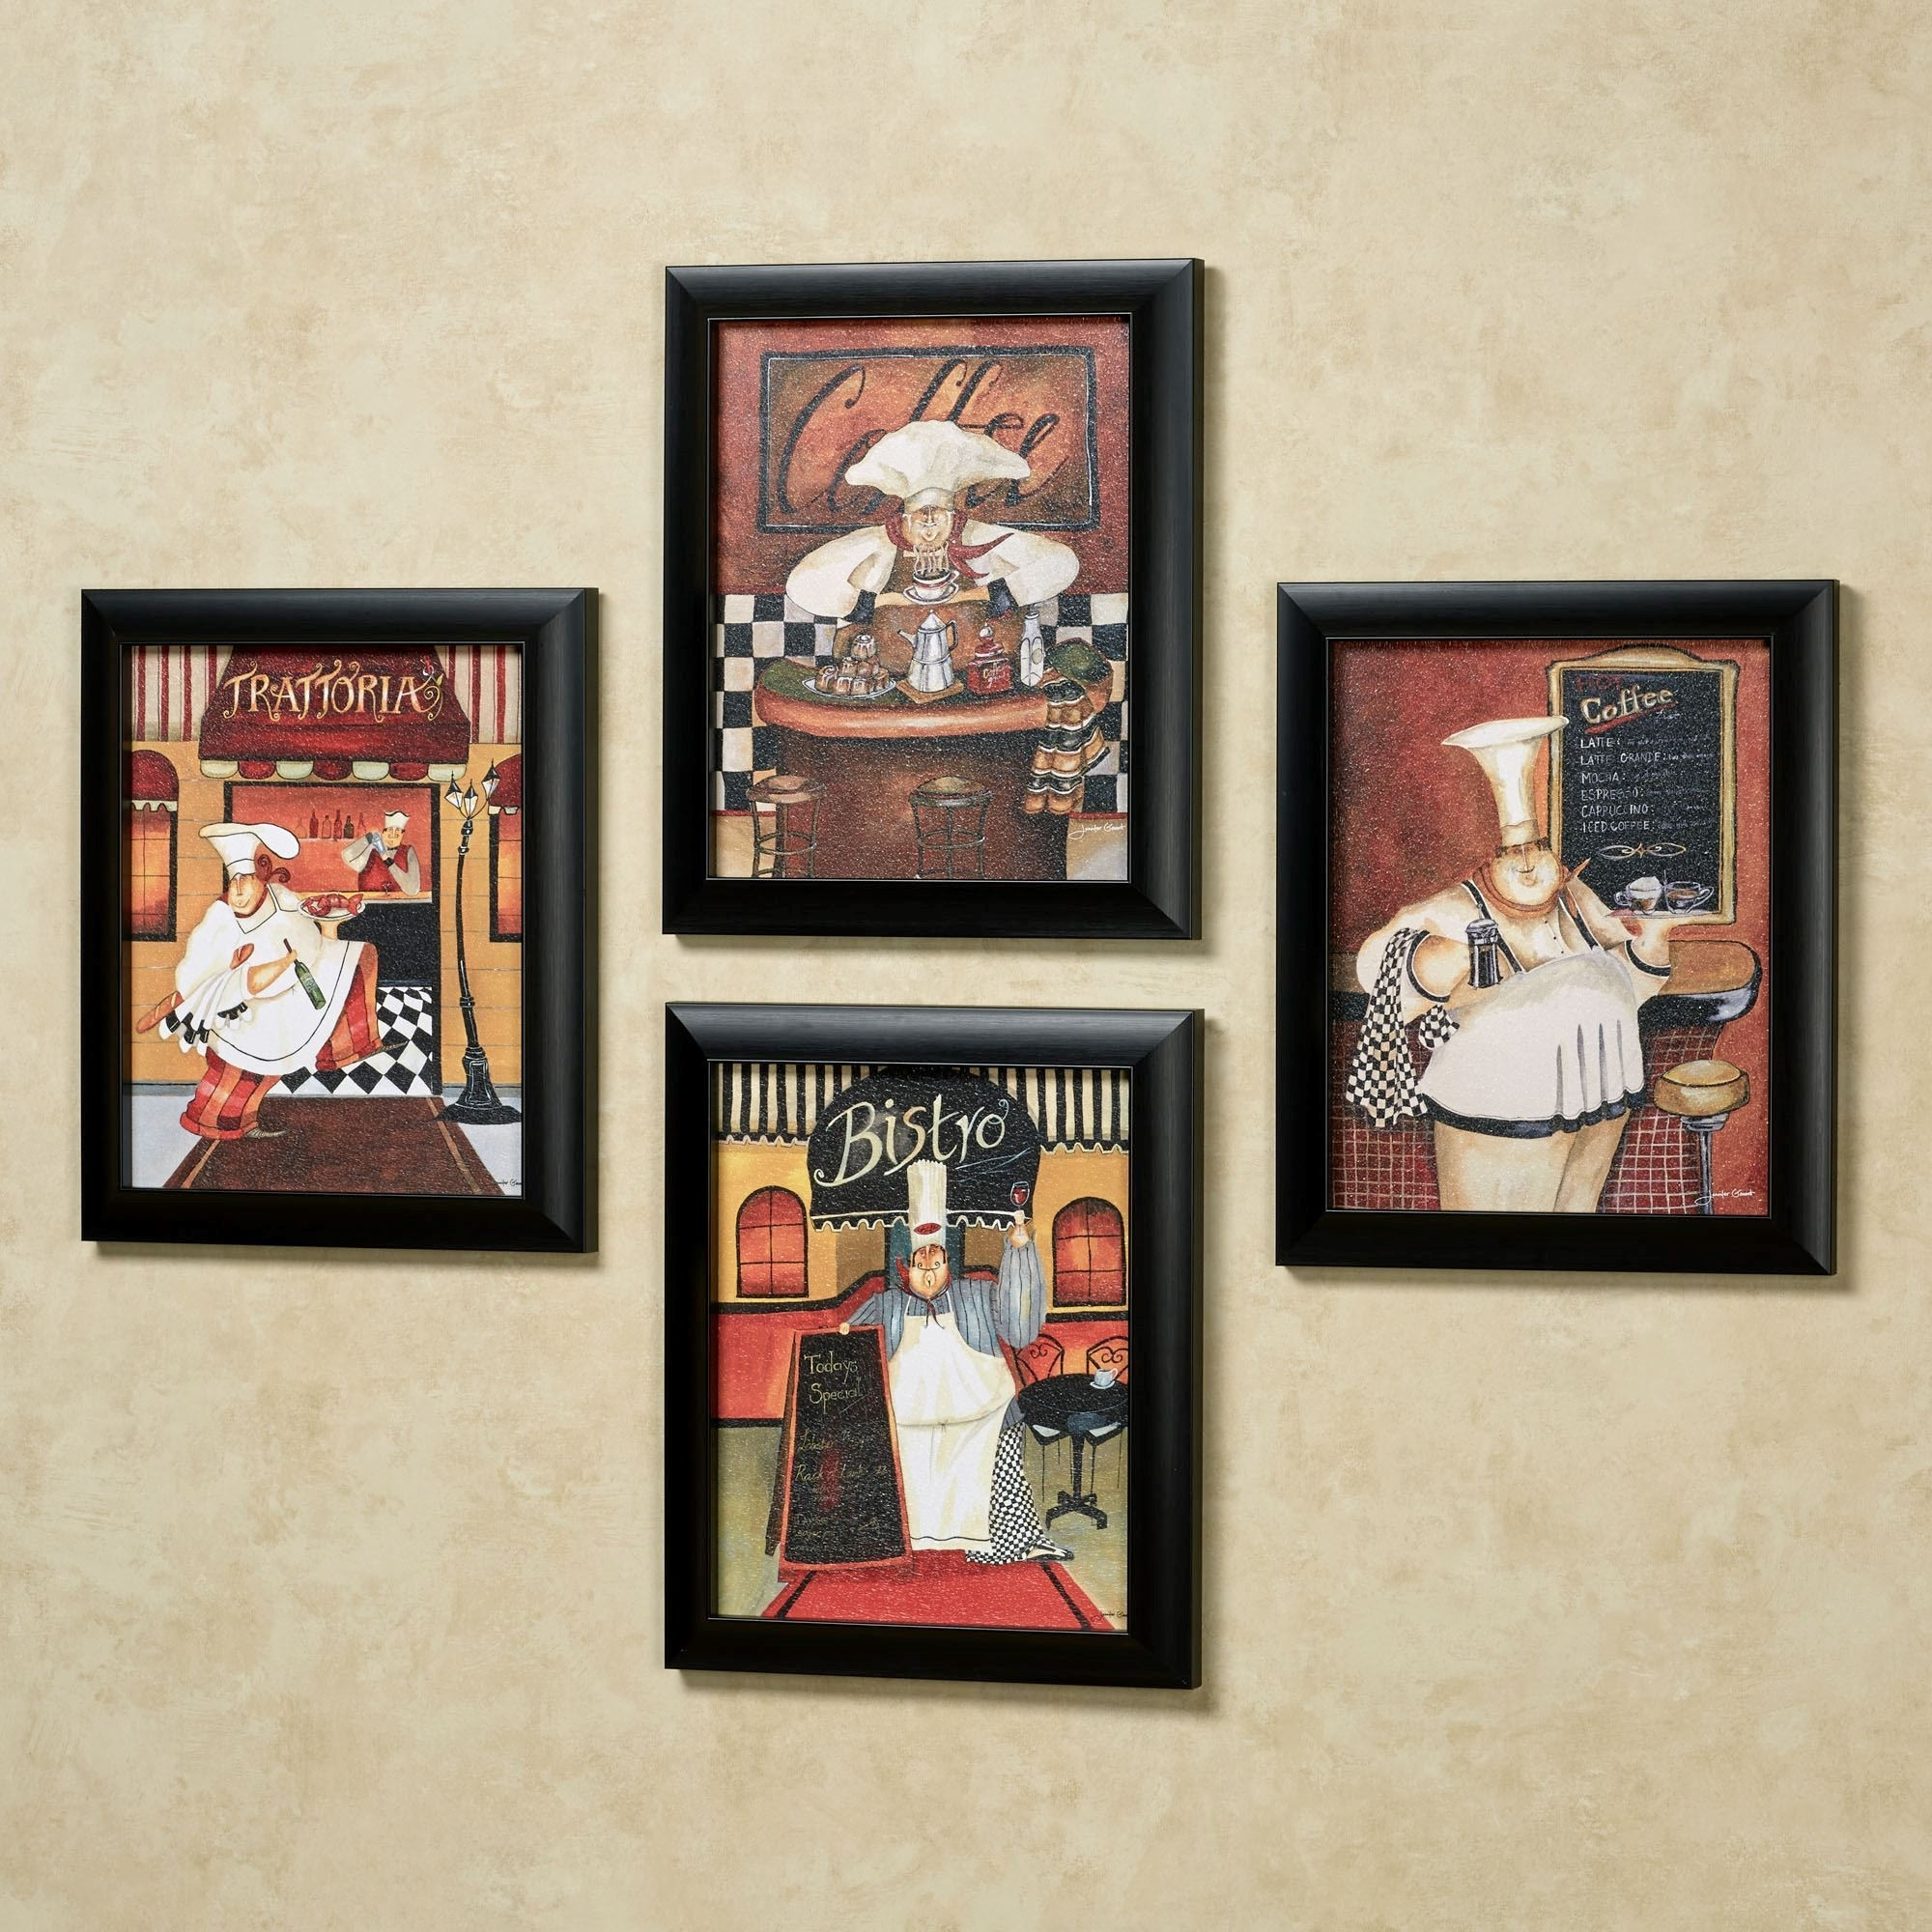 Sonoma Chef Framed Wall Art Set Within Most Up To Date Wall Art Sets (View 7 of 15)